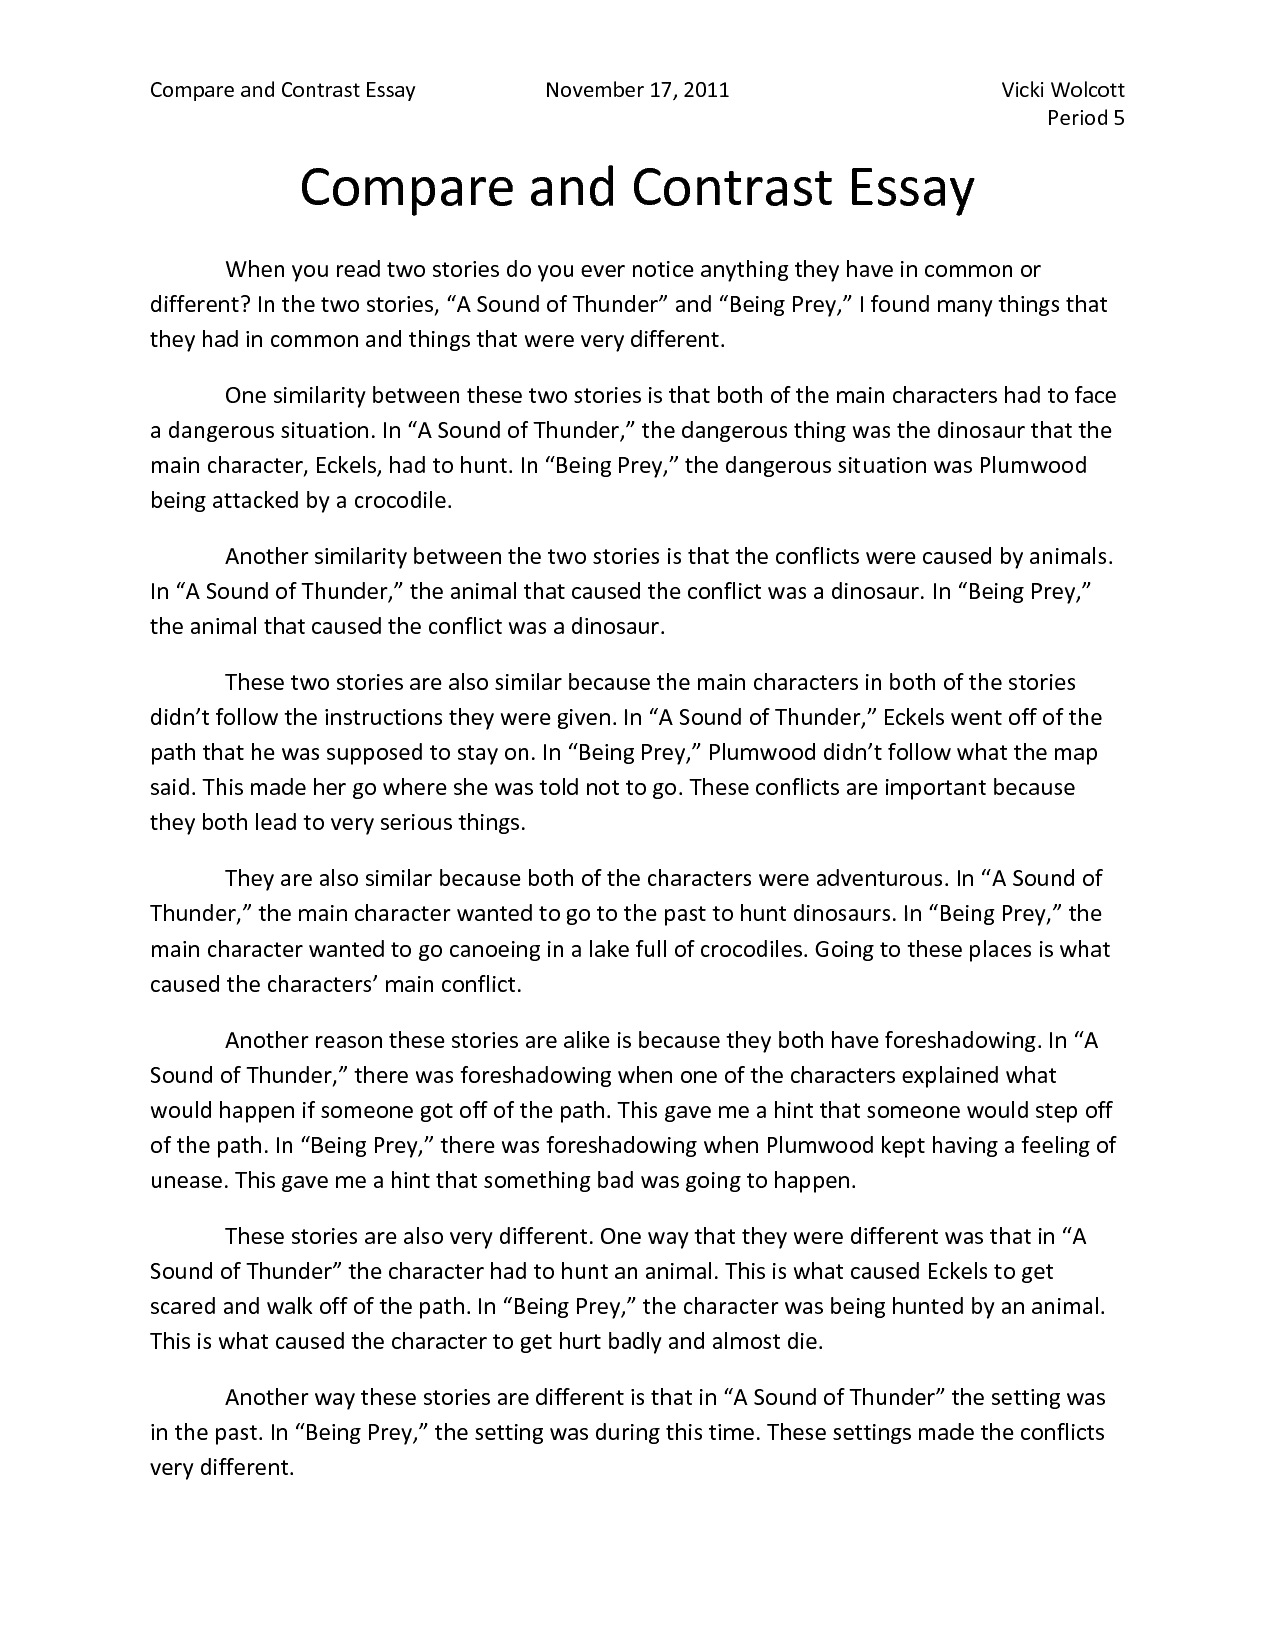 good comparison and contrast essay Check these top 135 fresh compare and contrast essay topics  comparison essay topics:  with such an extensive list of good compare and contrast essay topics,.